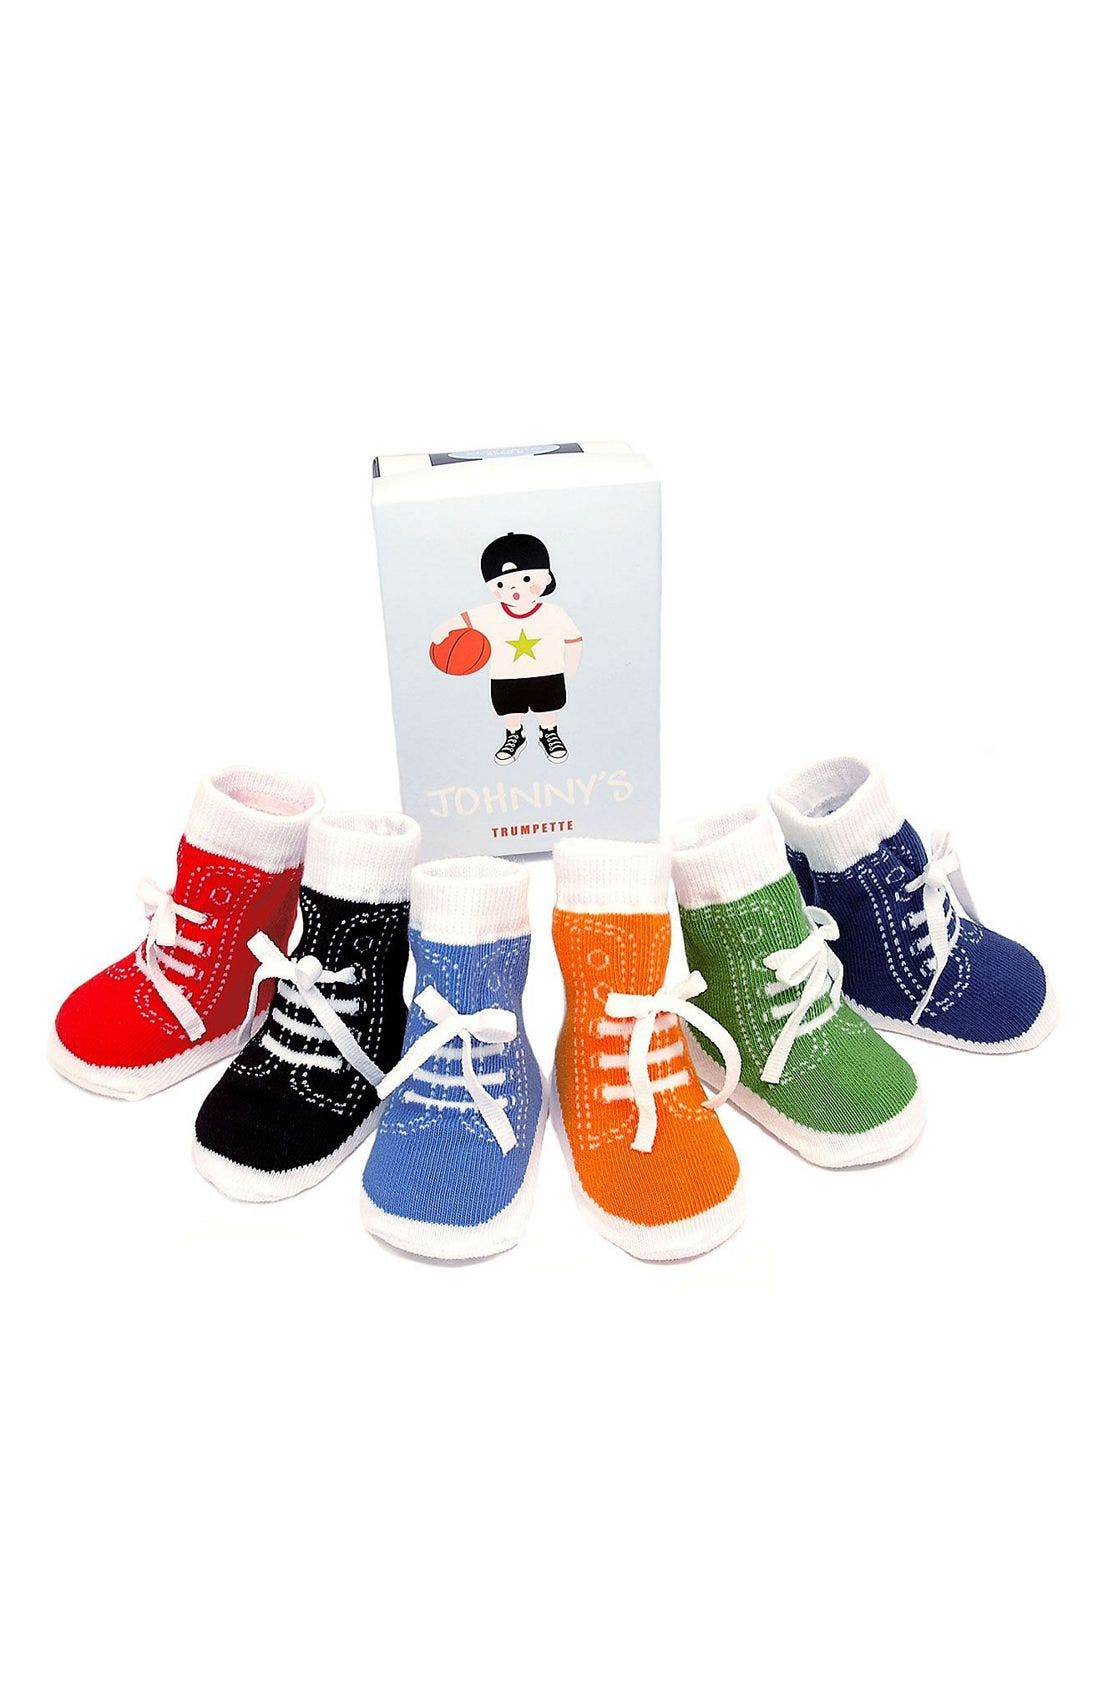 Main Image - Trumpette 'Johnny' Socks Gift Set (Baby Boys)